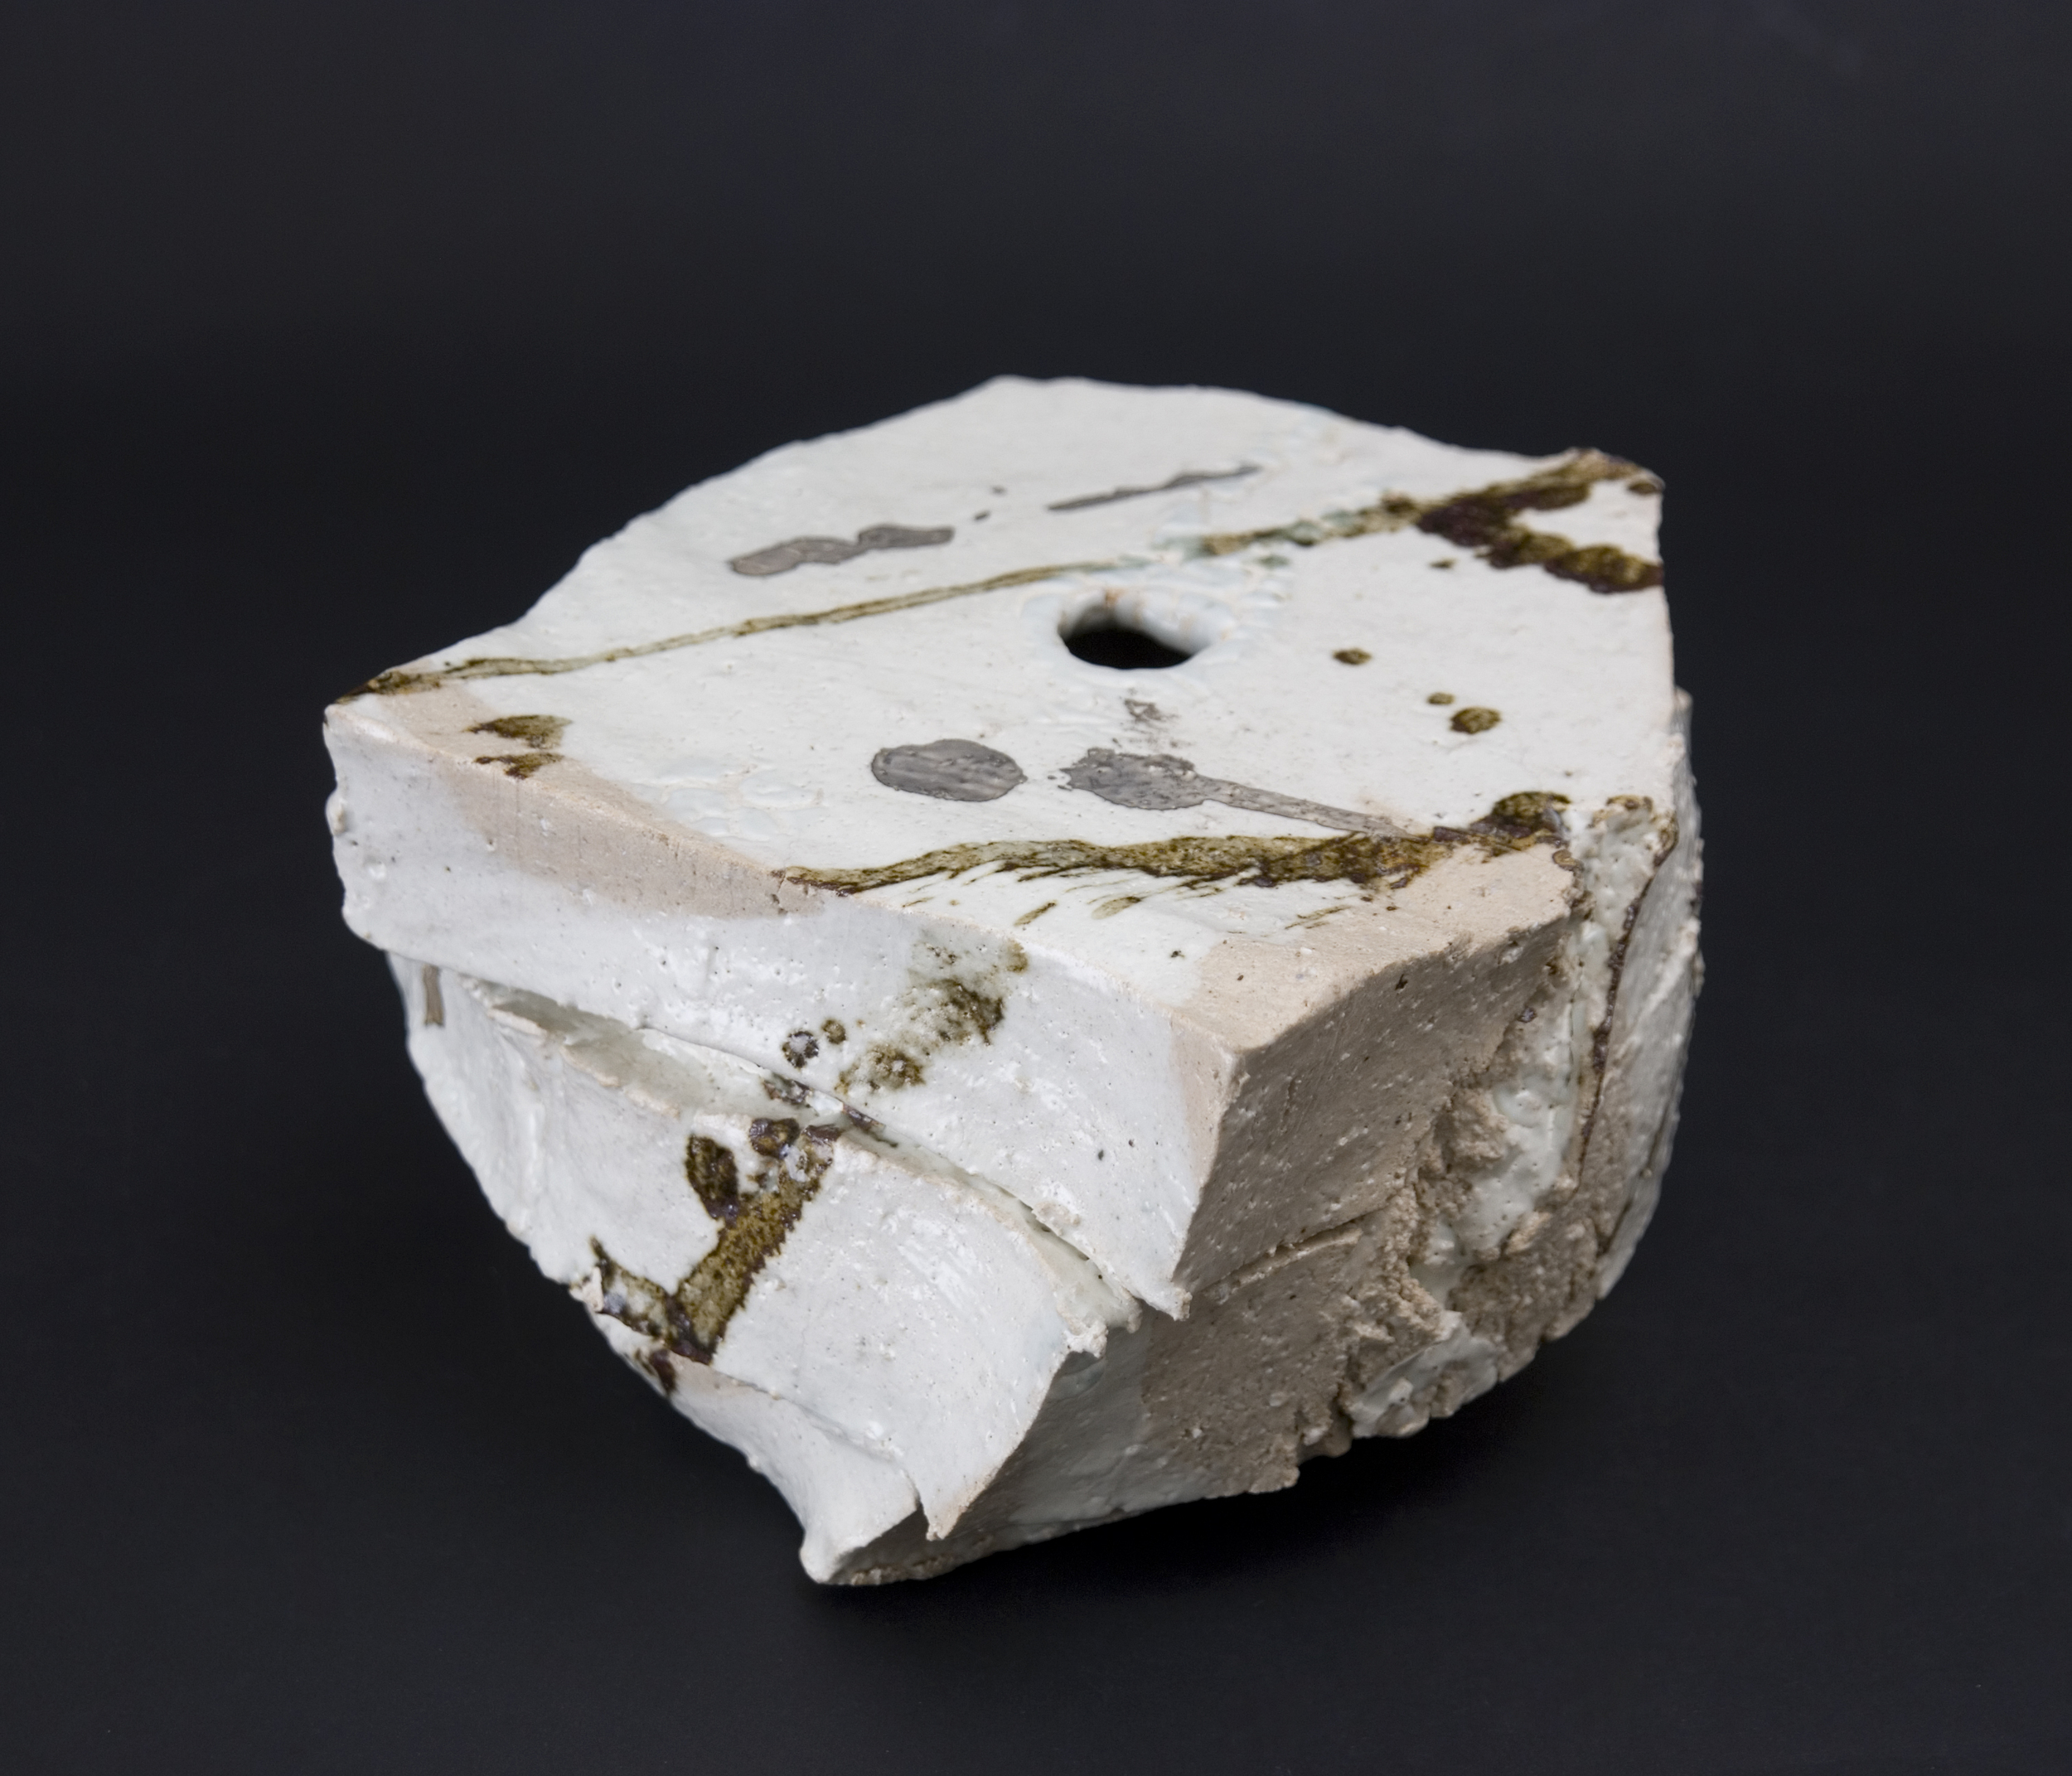 Shozo Michikawa    Small Twist Form  , 2010 Stoneware with Kohiki glaze 4 x 7 x 7  inches  /  10.2 x 17.8 x 17.8 cm  /  SMi 7